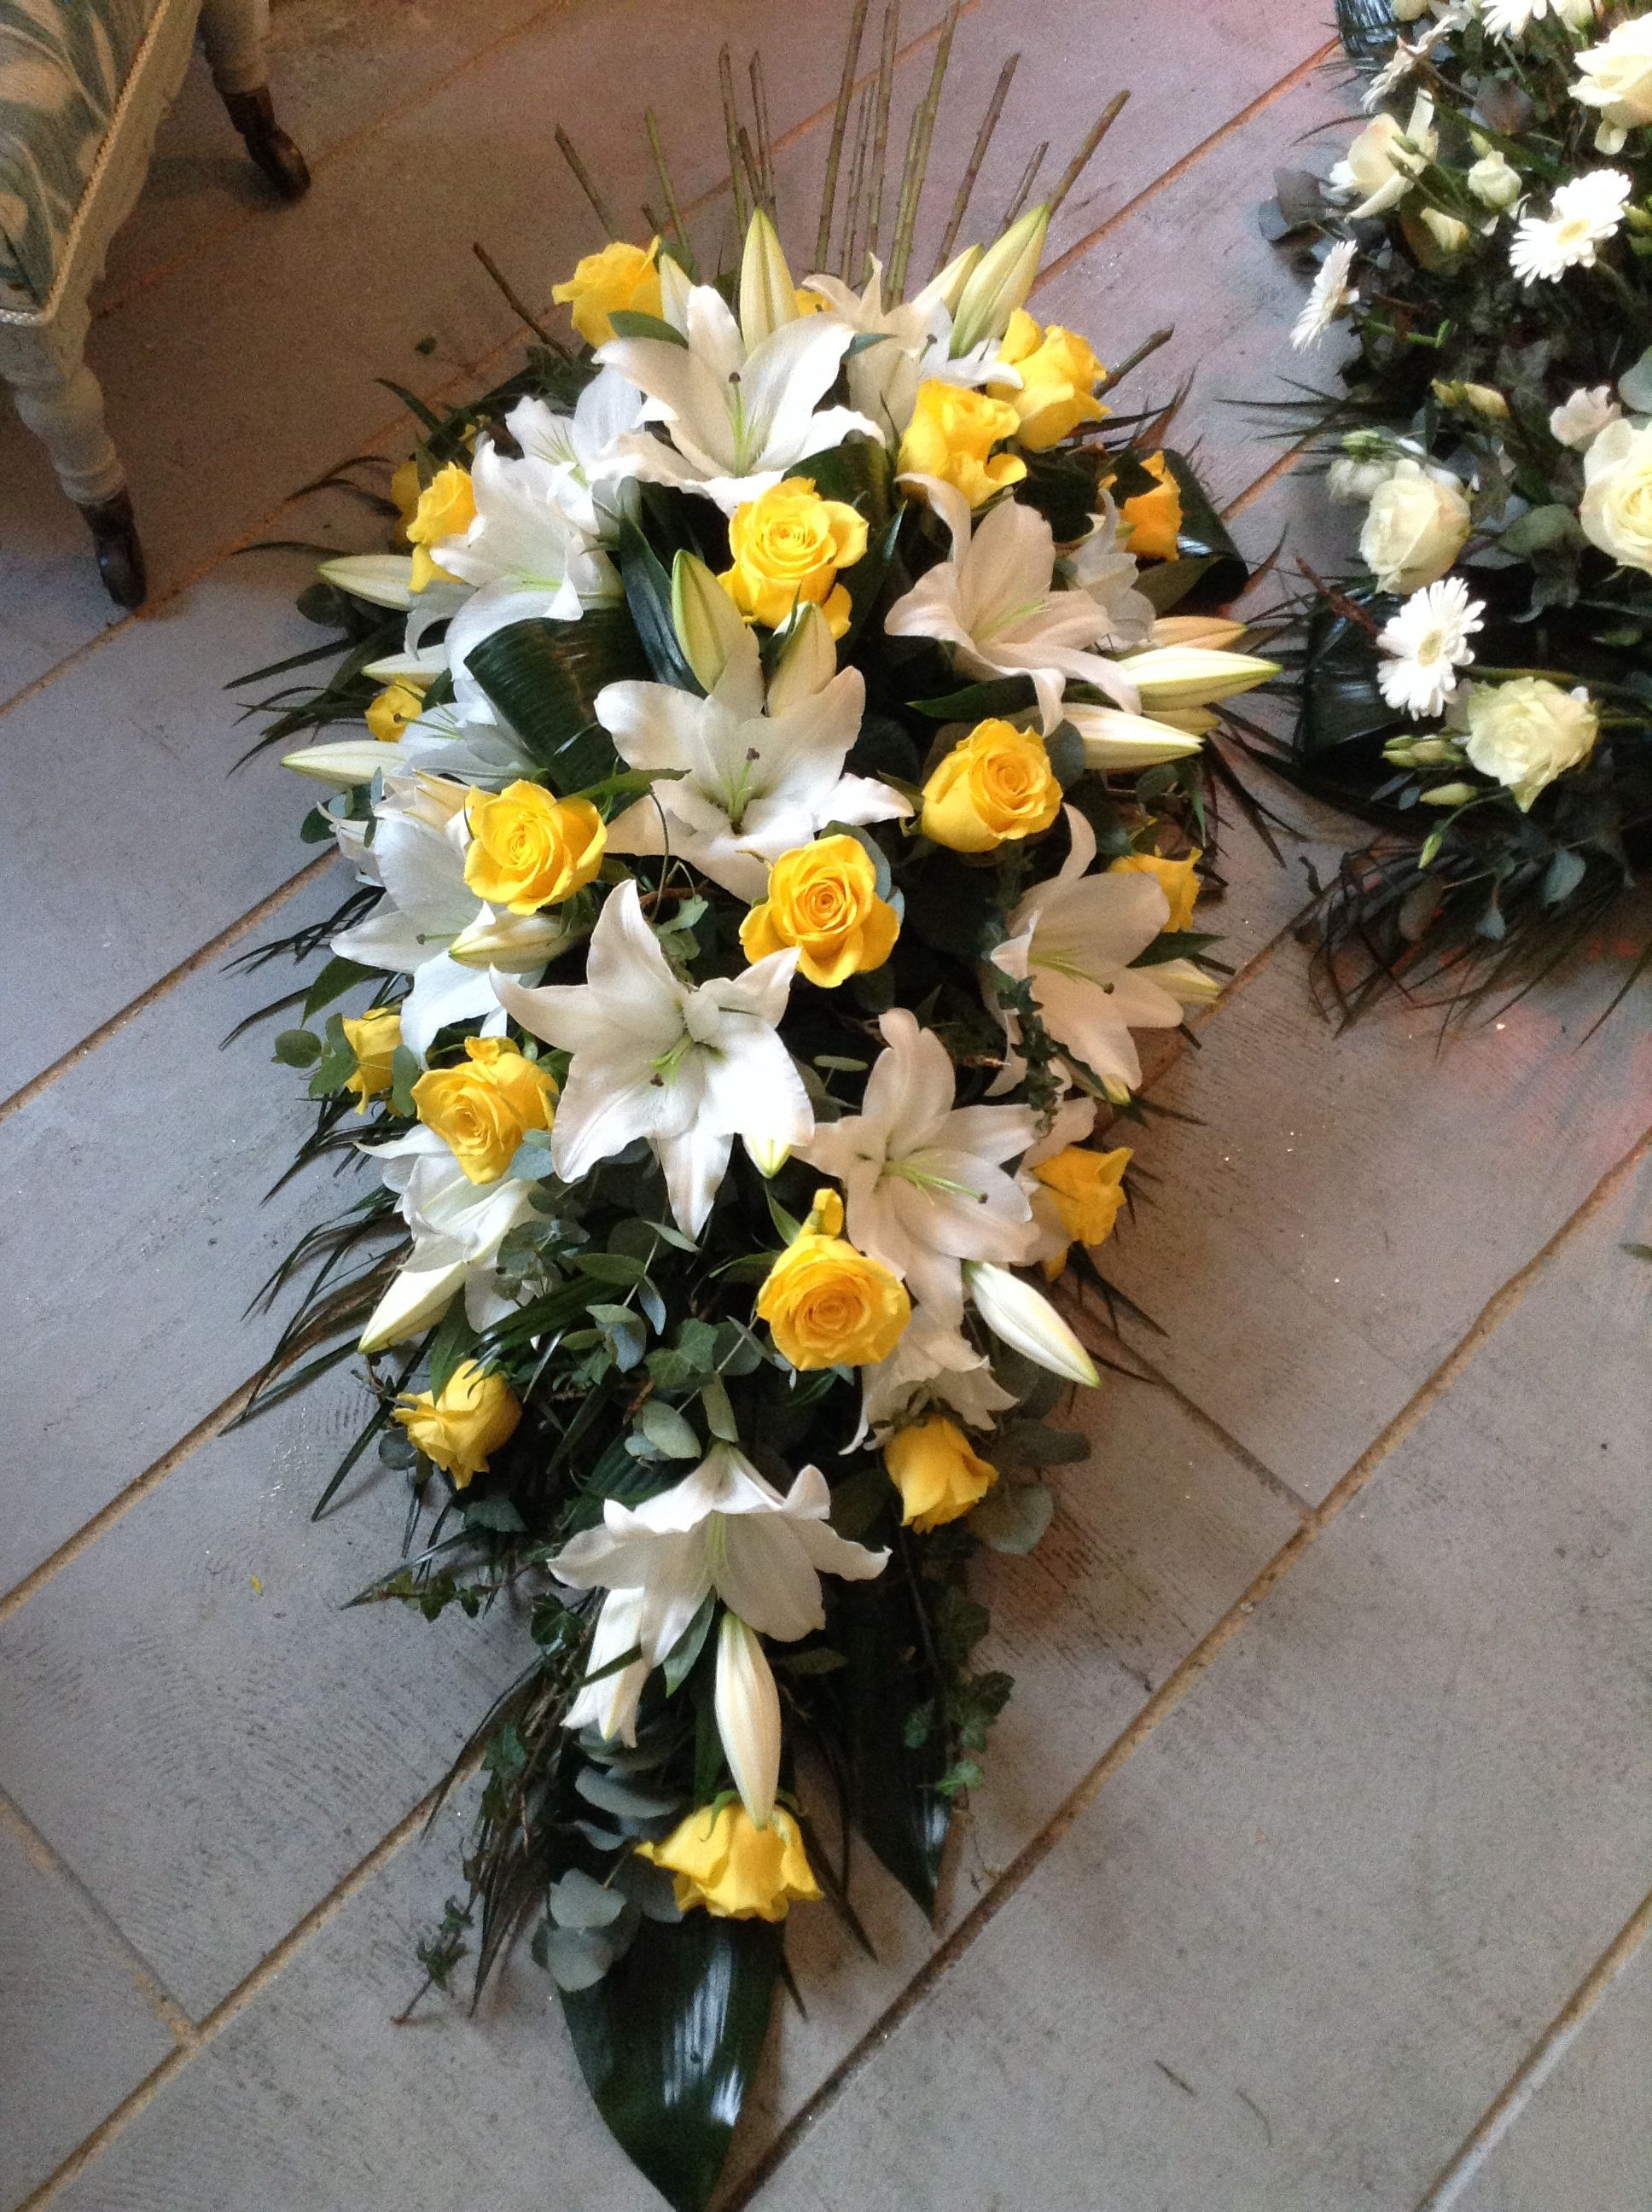 Funeral Flowers White Lily And Yellow Rose Funeral Spray Casket